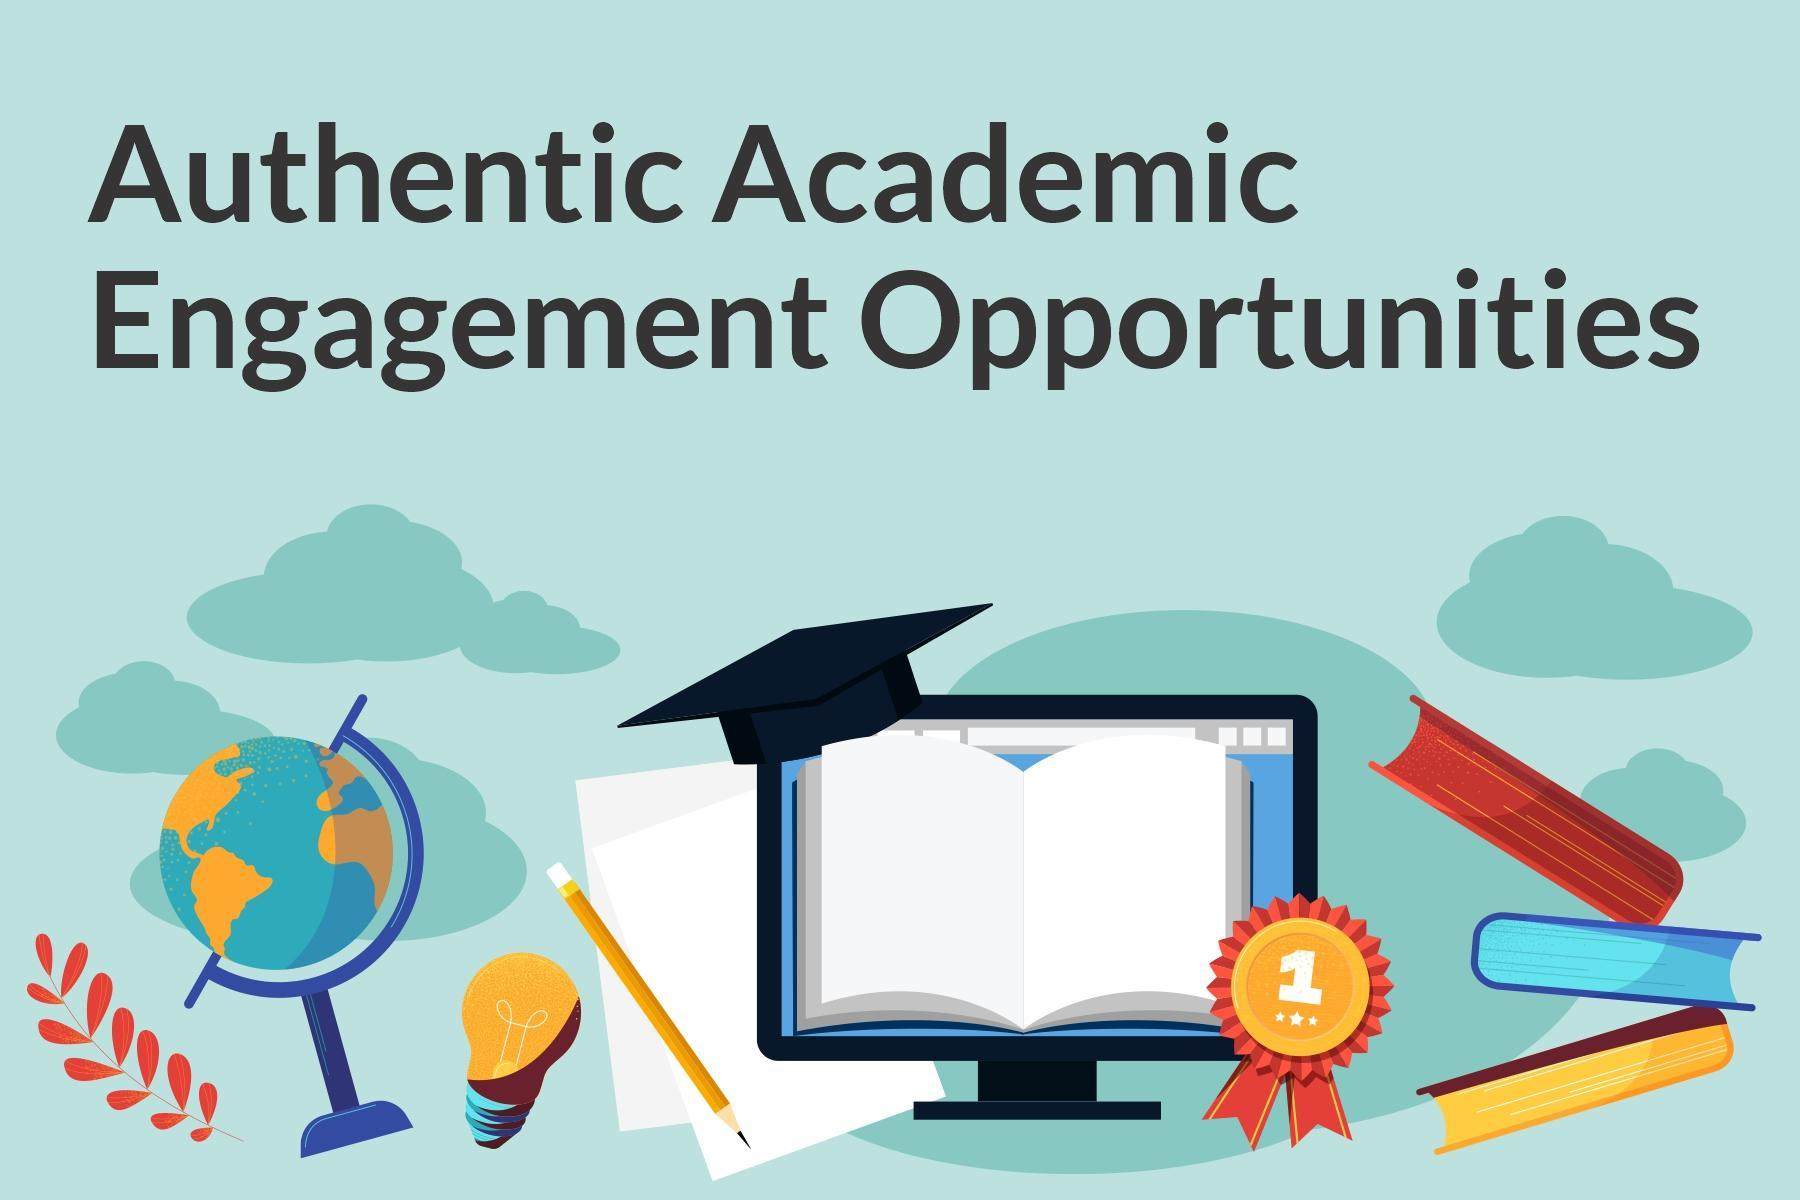 Academic Engagement Opportunities